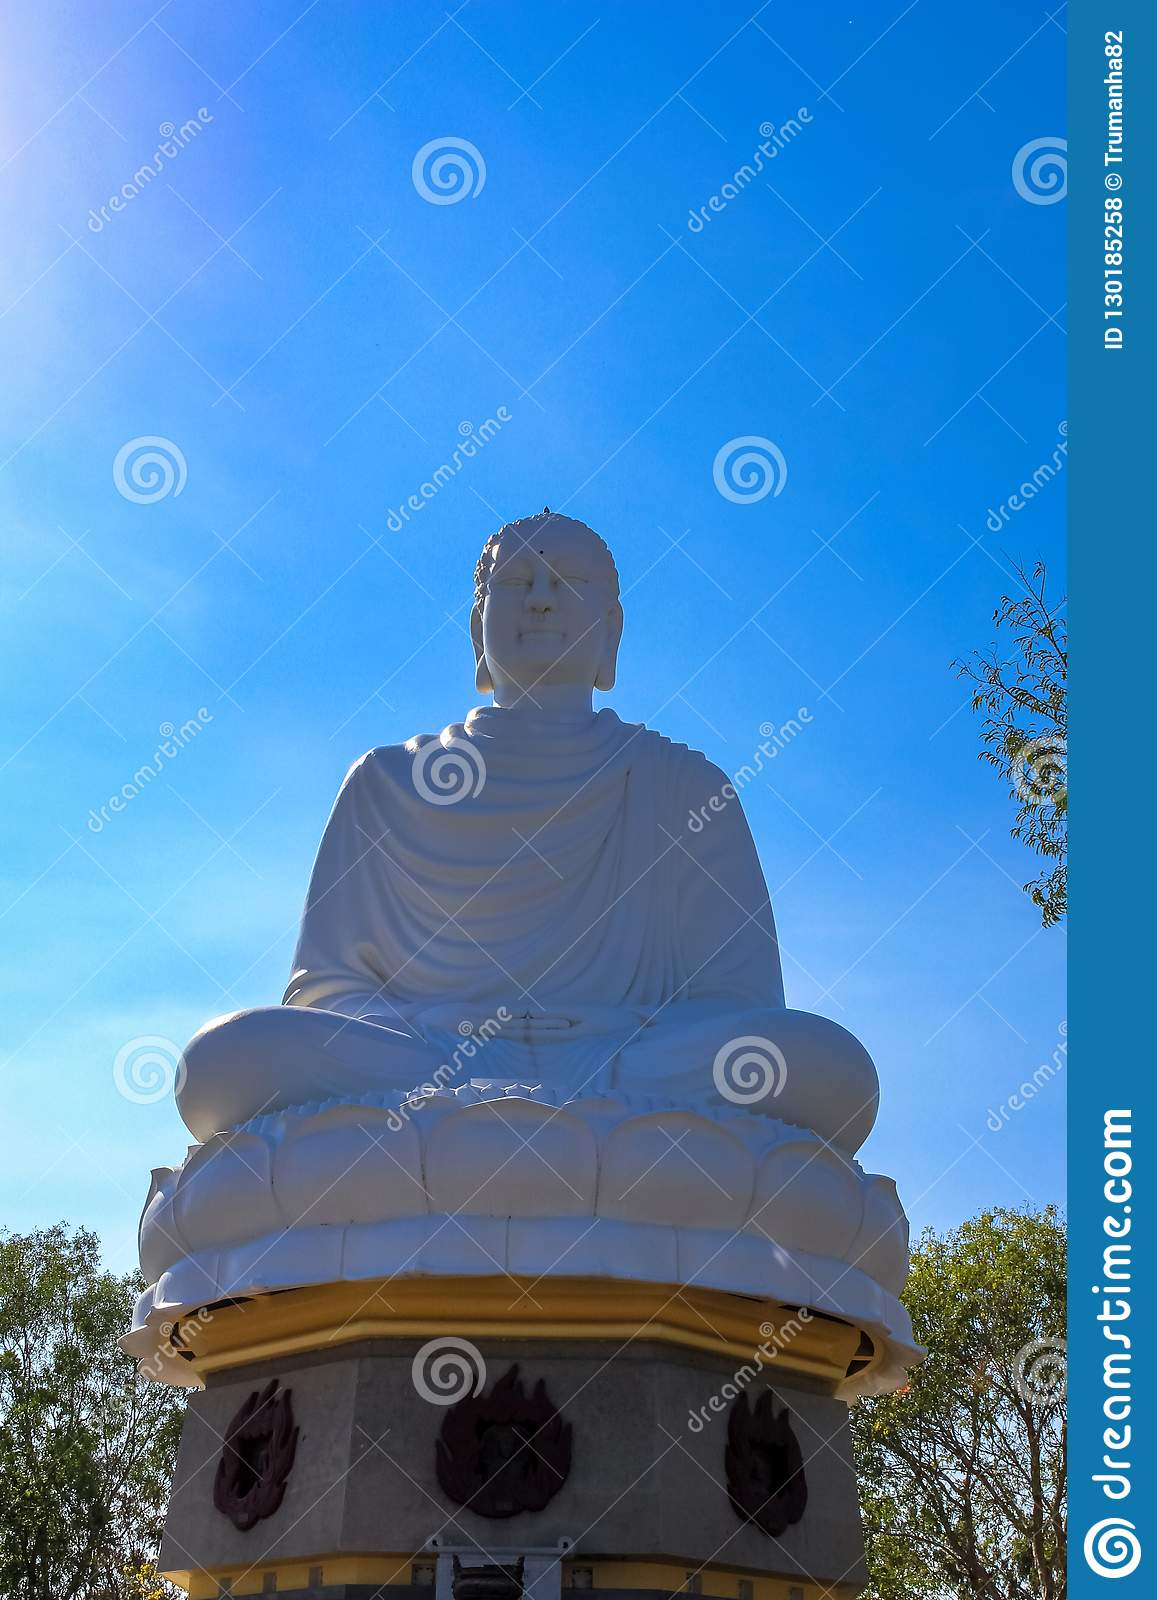 A Huge White Sitting Budha Statue against Blue Sky